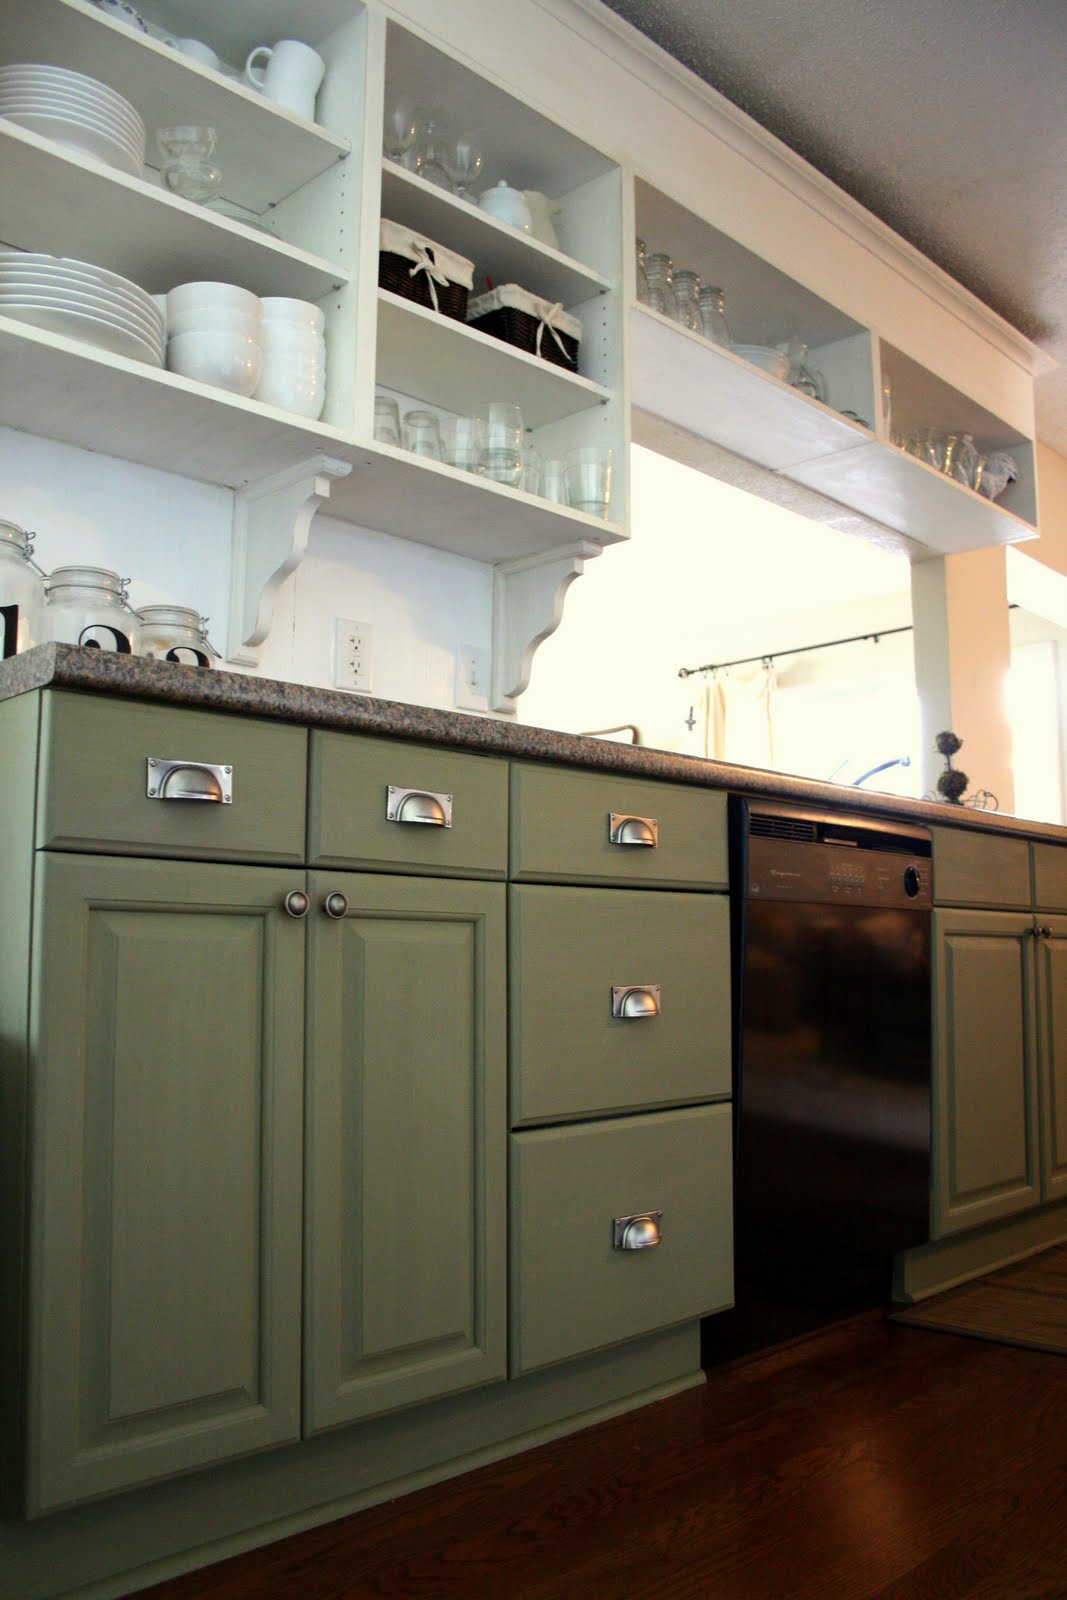 The virginia house painting my cabinets with caromal for Two colour kitchen units